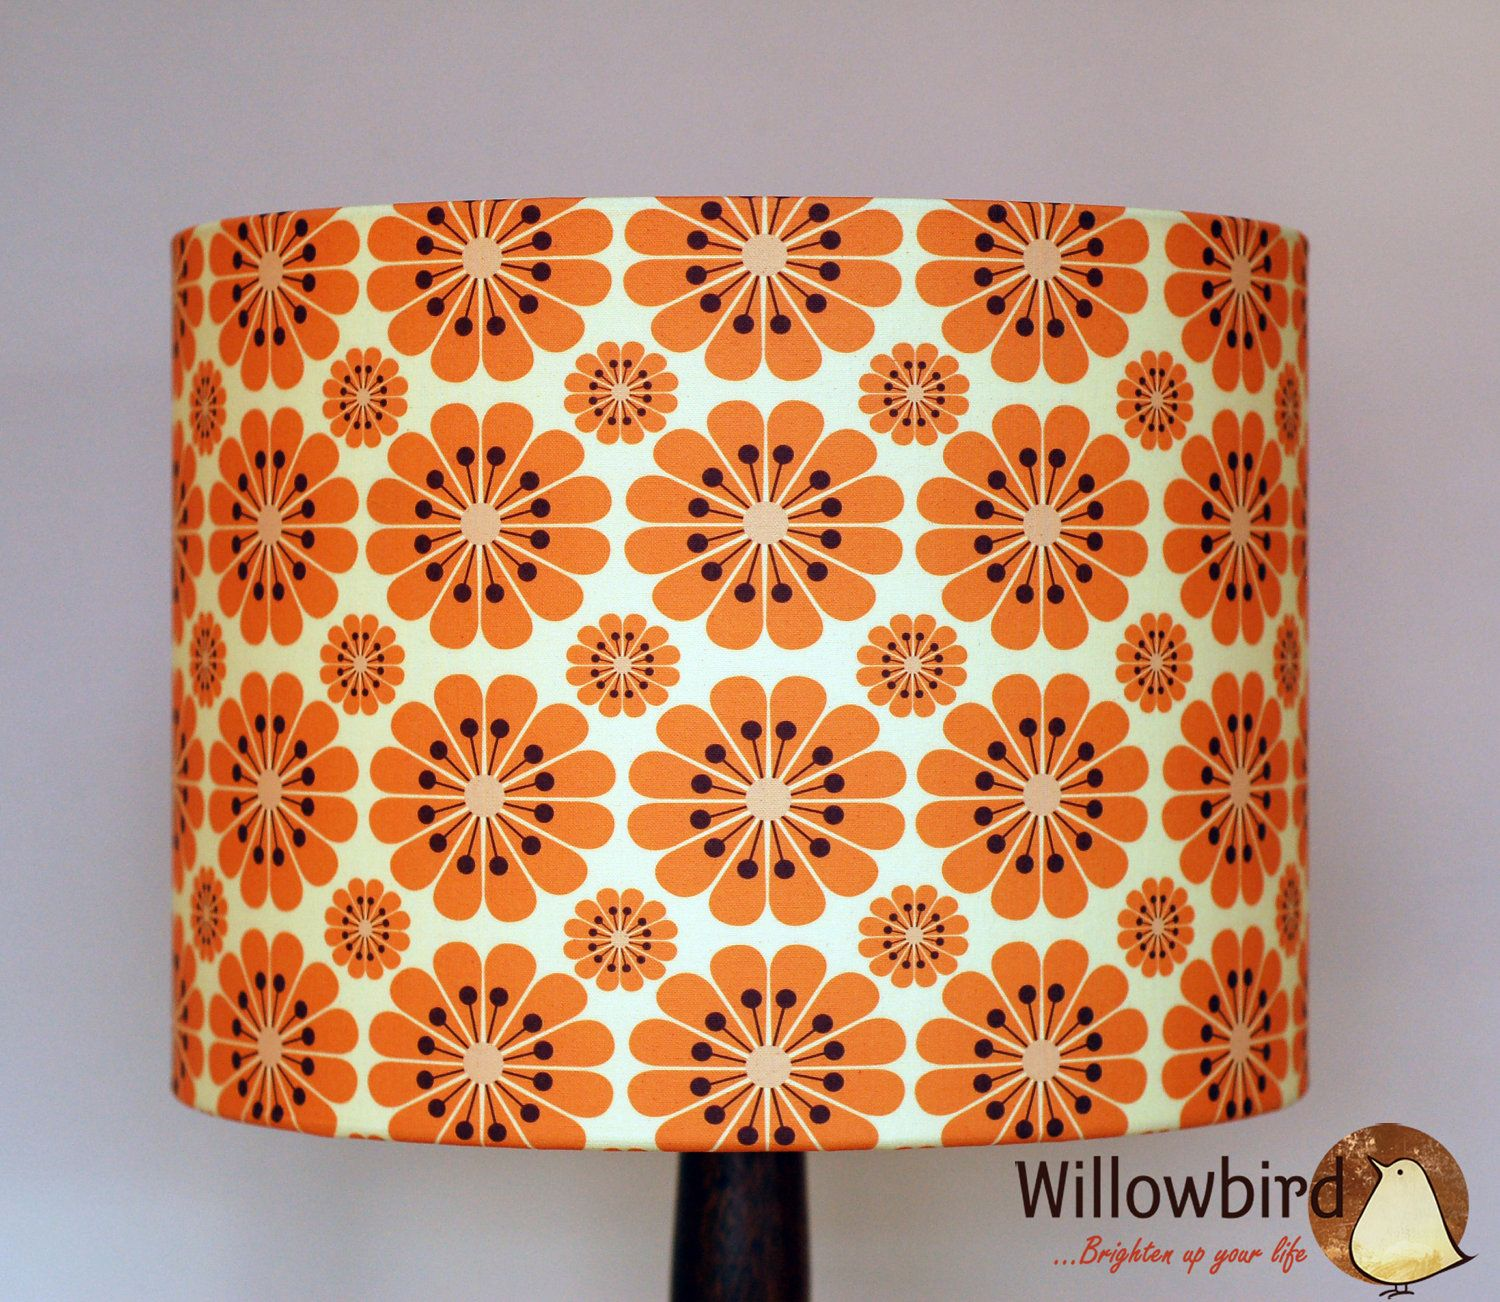 High Quality Unique Suspended Lamp Shade Inspired By Beehive U Nectar Lamp With Lamp  Shades. Excellent Images About Retro Lamp On Pinterest Modern Lamp Shades  With Lamp ...